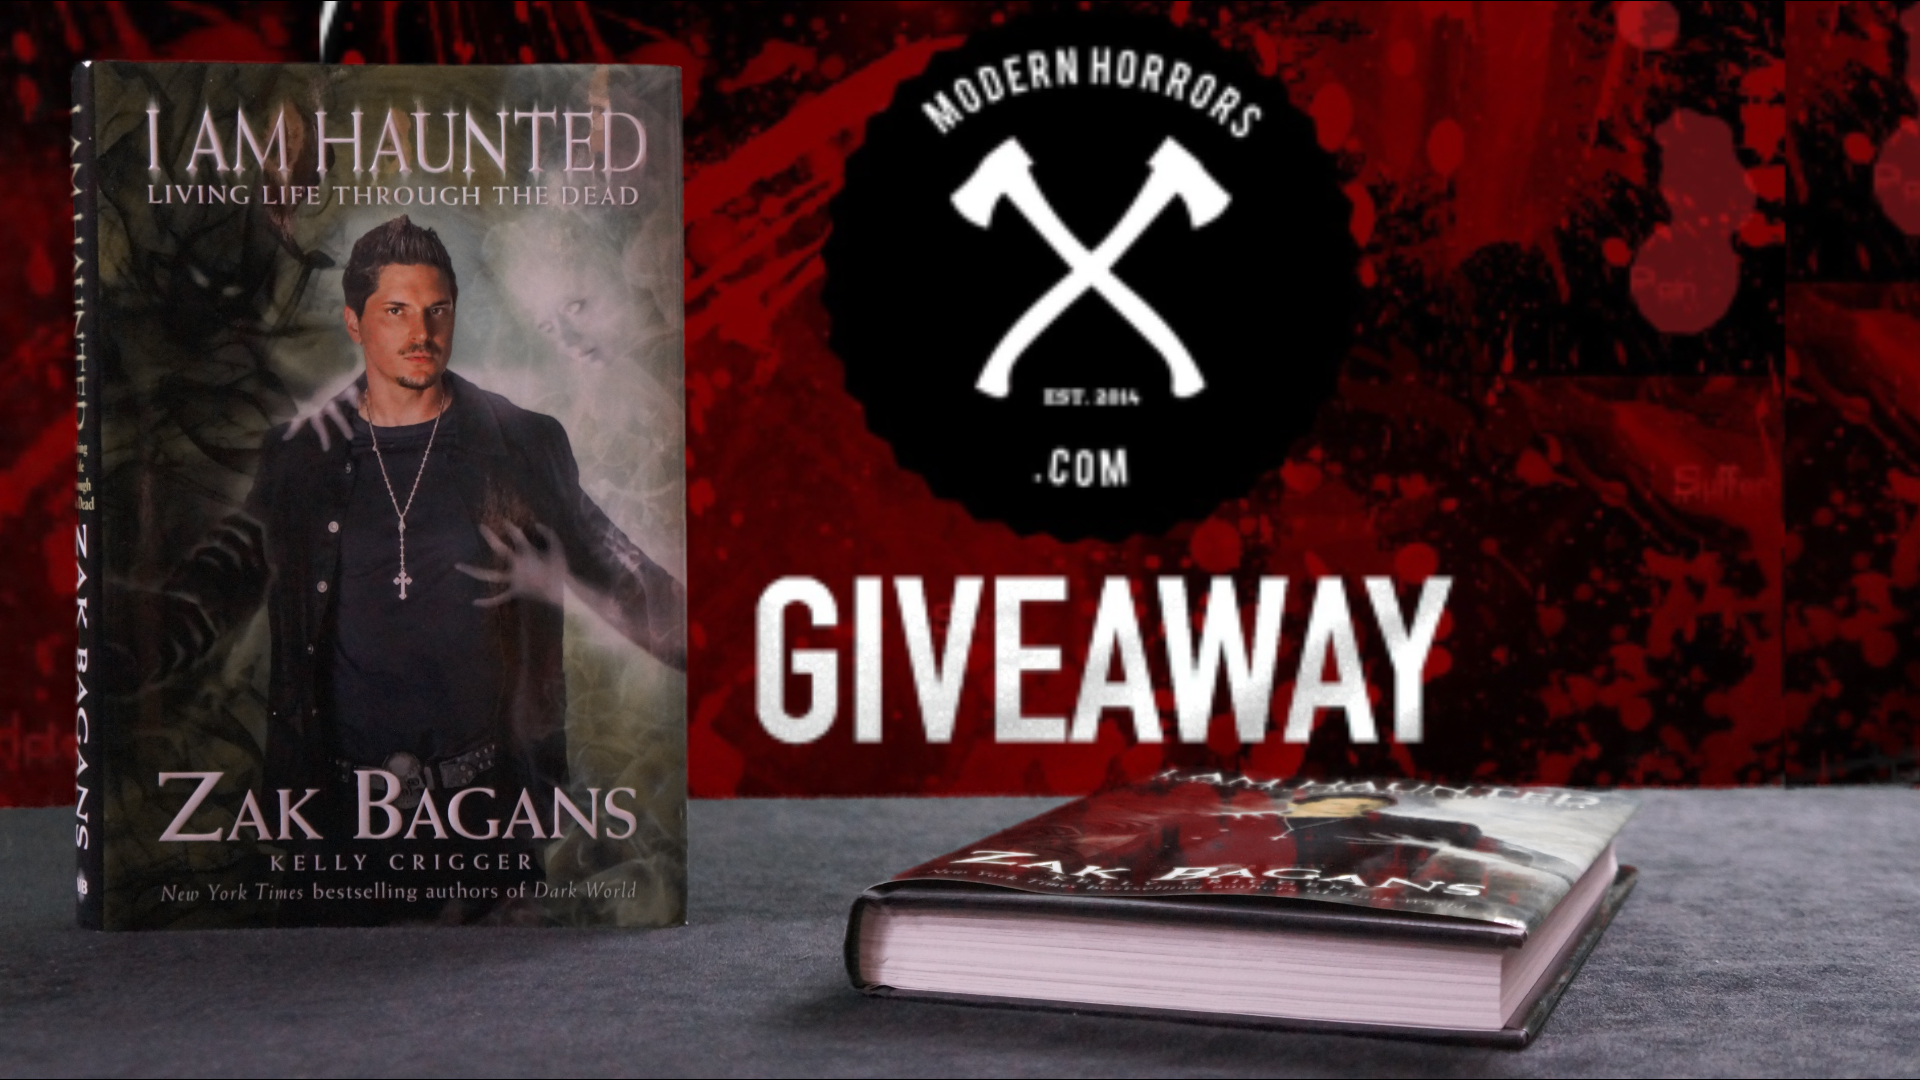 I Am Haunted Giveaway Modern Horrors